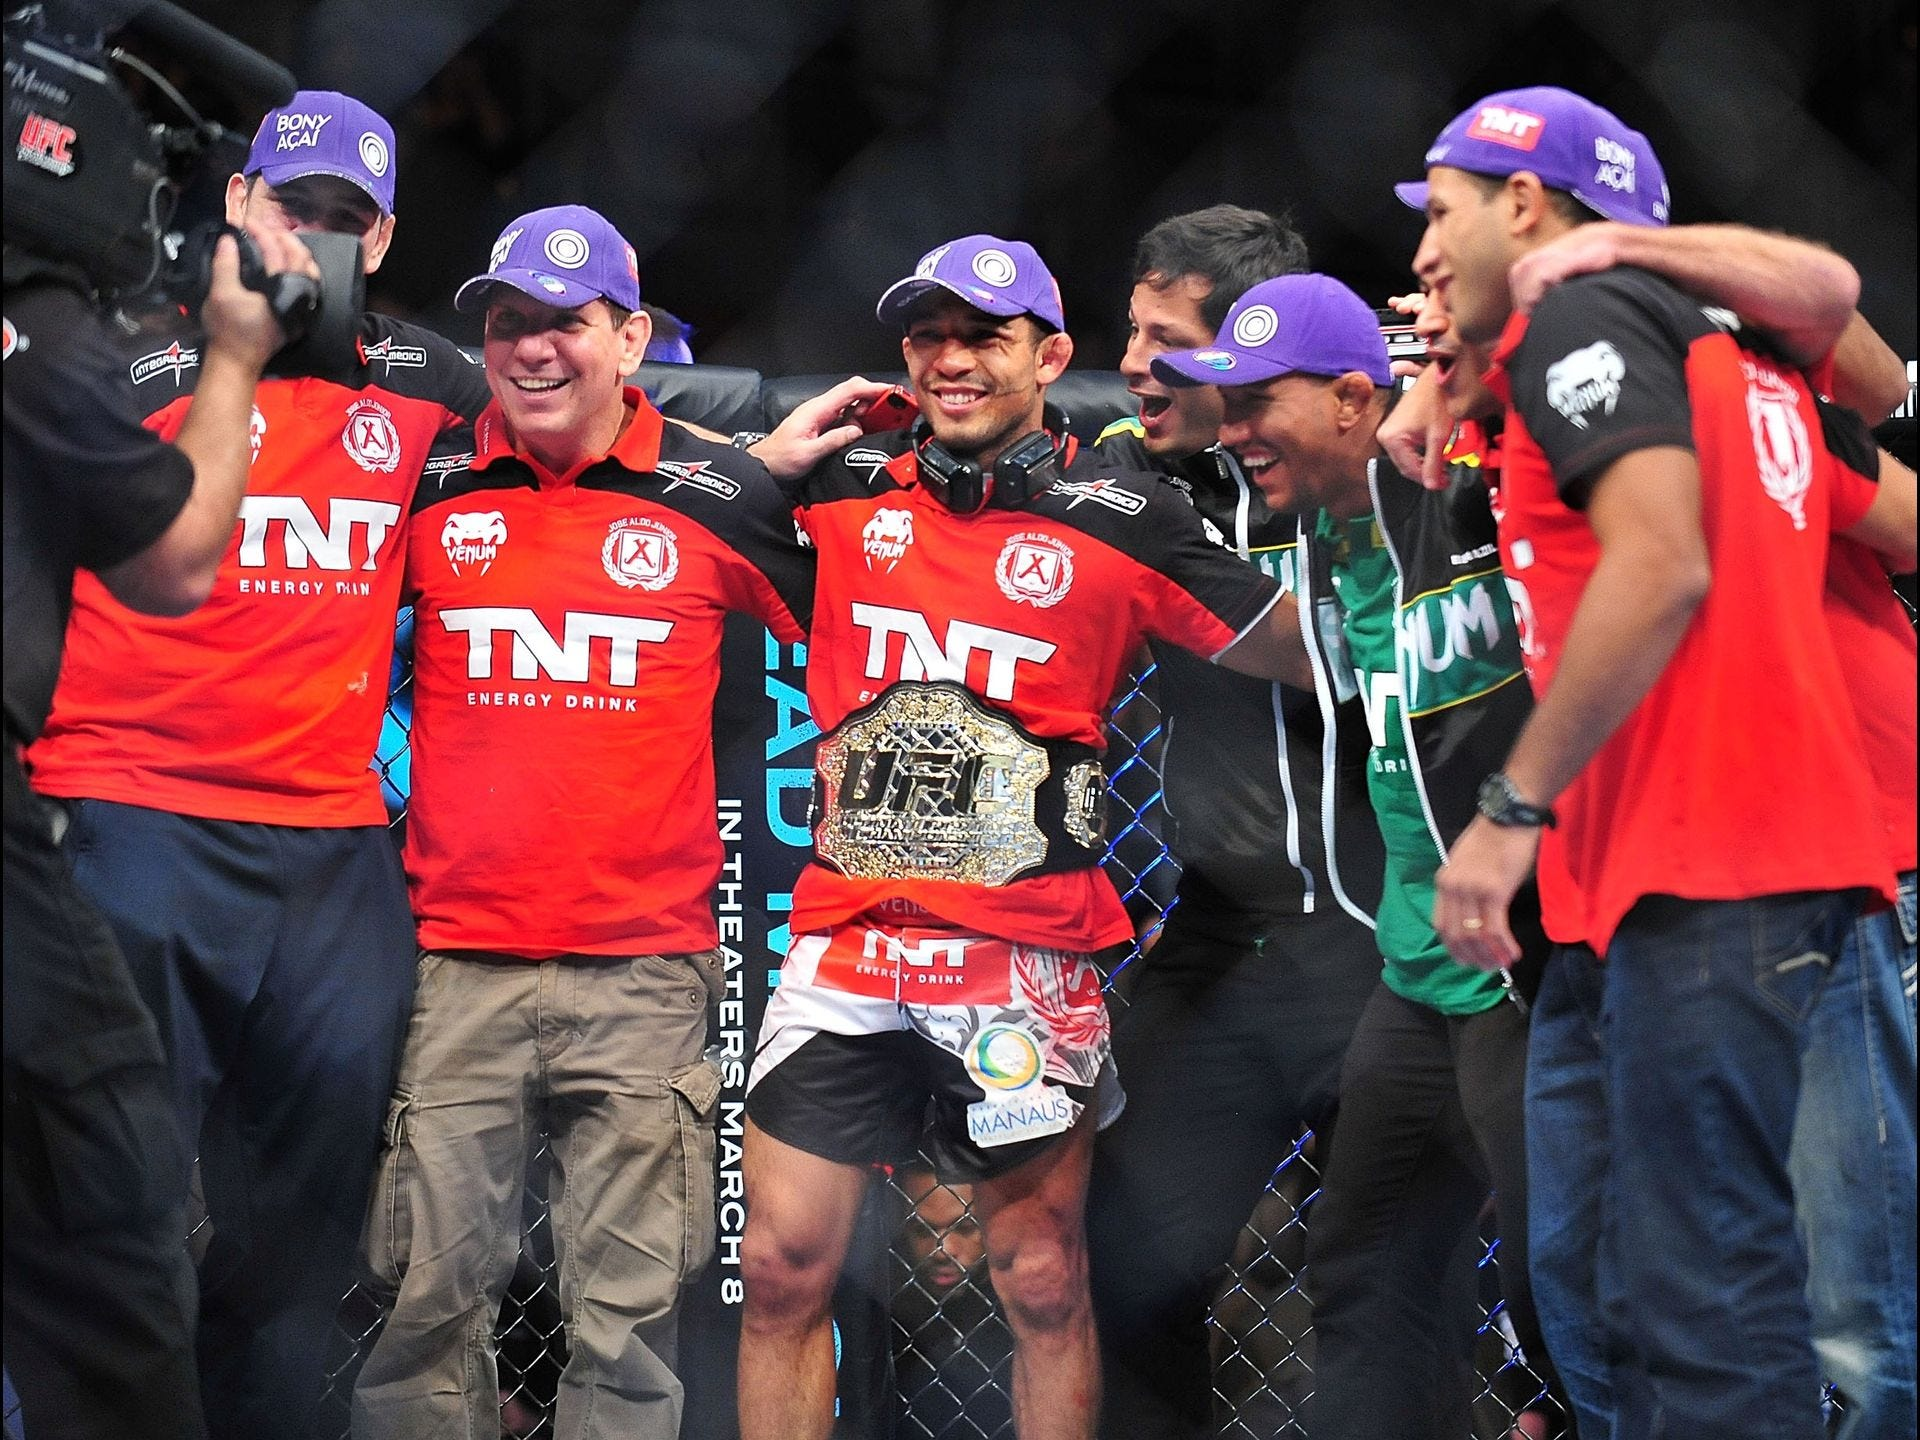 UFC 156 invaded the Mandalay Bay Events Center in Las Vegas with three marquee bouts. Jose Aldo, center, closed the show with a unanimous-decision victory over Frankie Edgar to retain his UFC featherweight title.